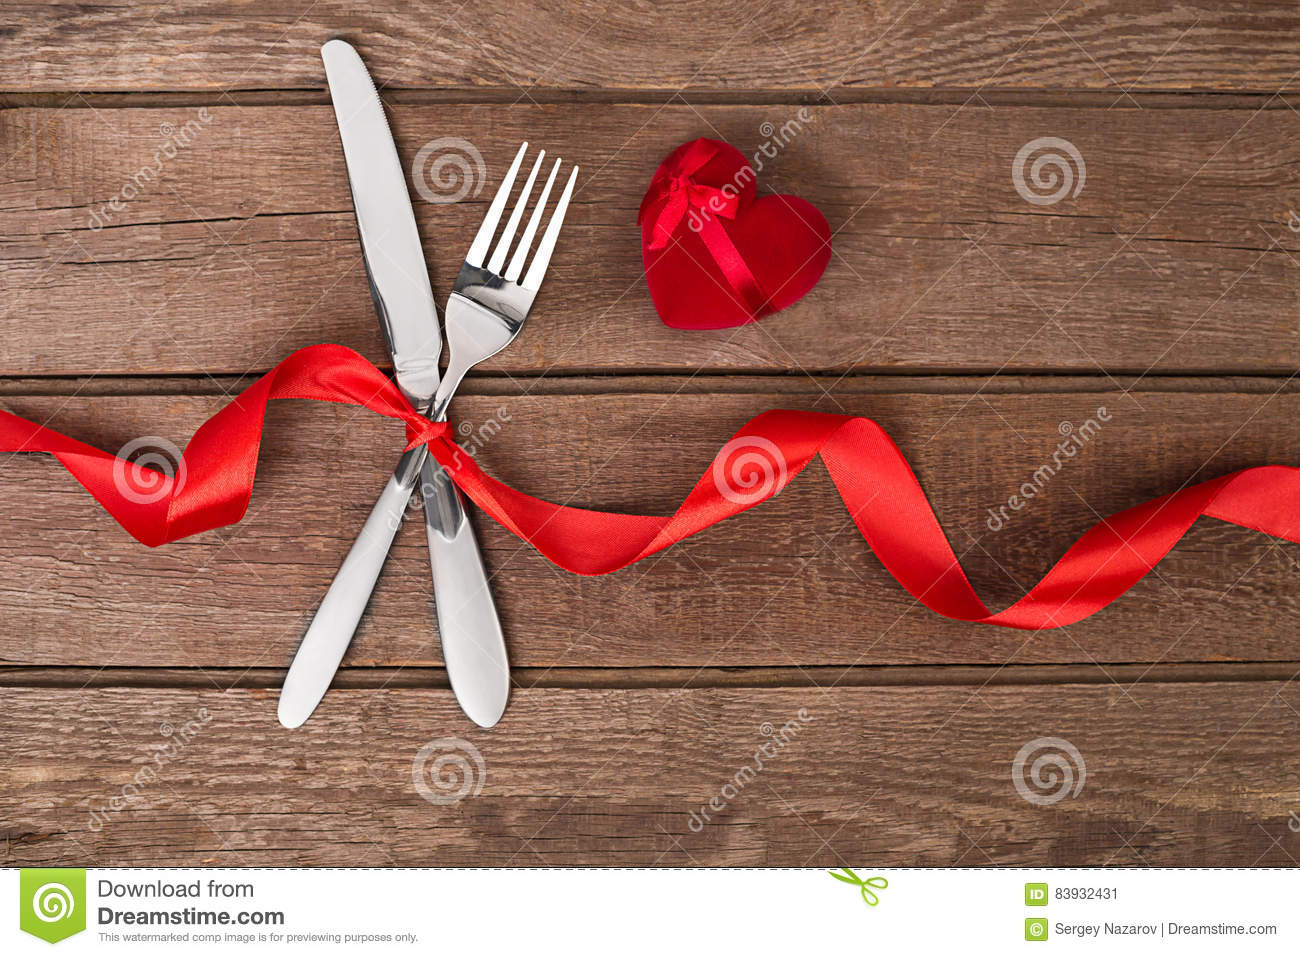 Table Setting Background valentine`s day dinner table setting with red ribbon, knife and